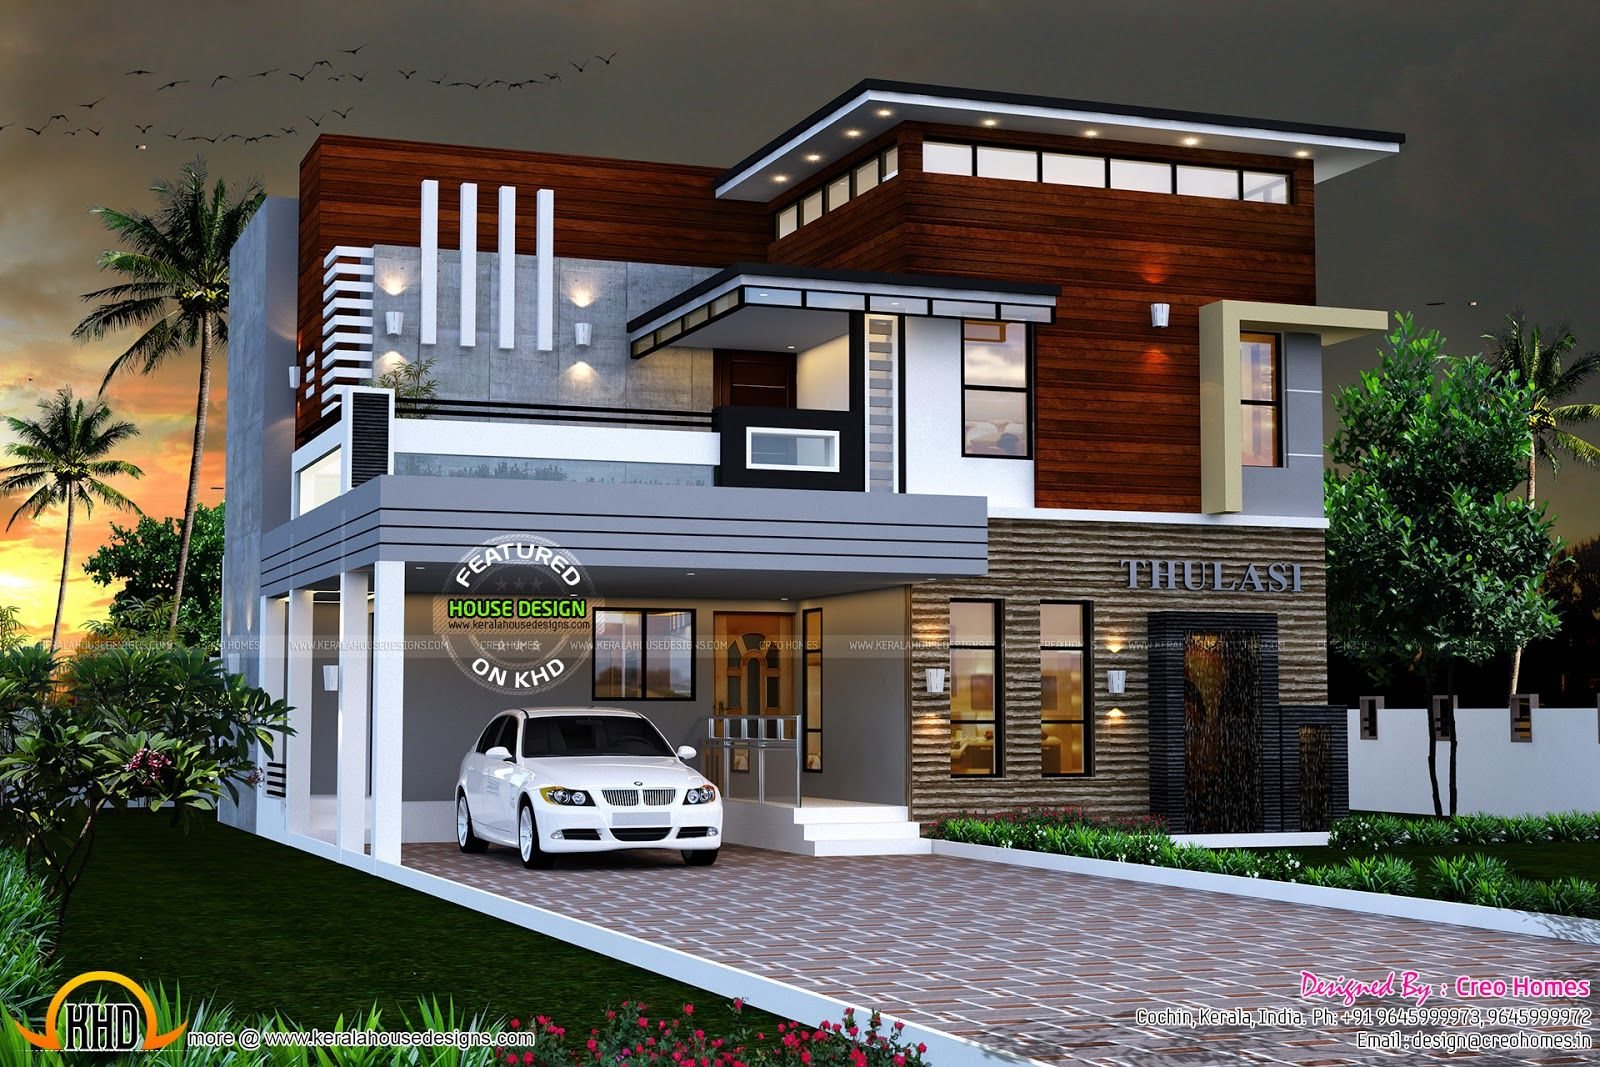 Eterior design modern small house architecture building for House designer builder